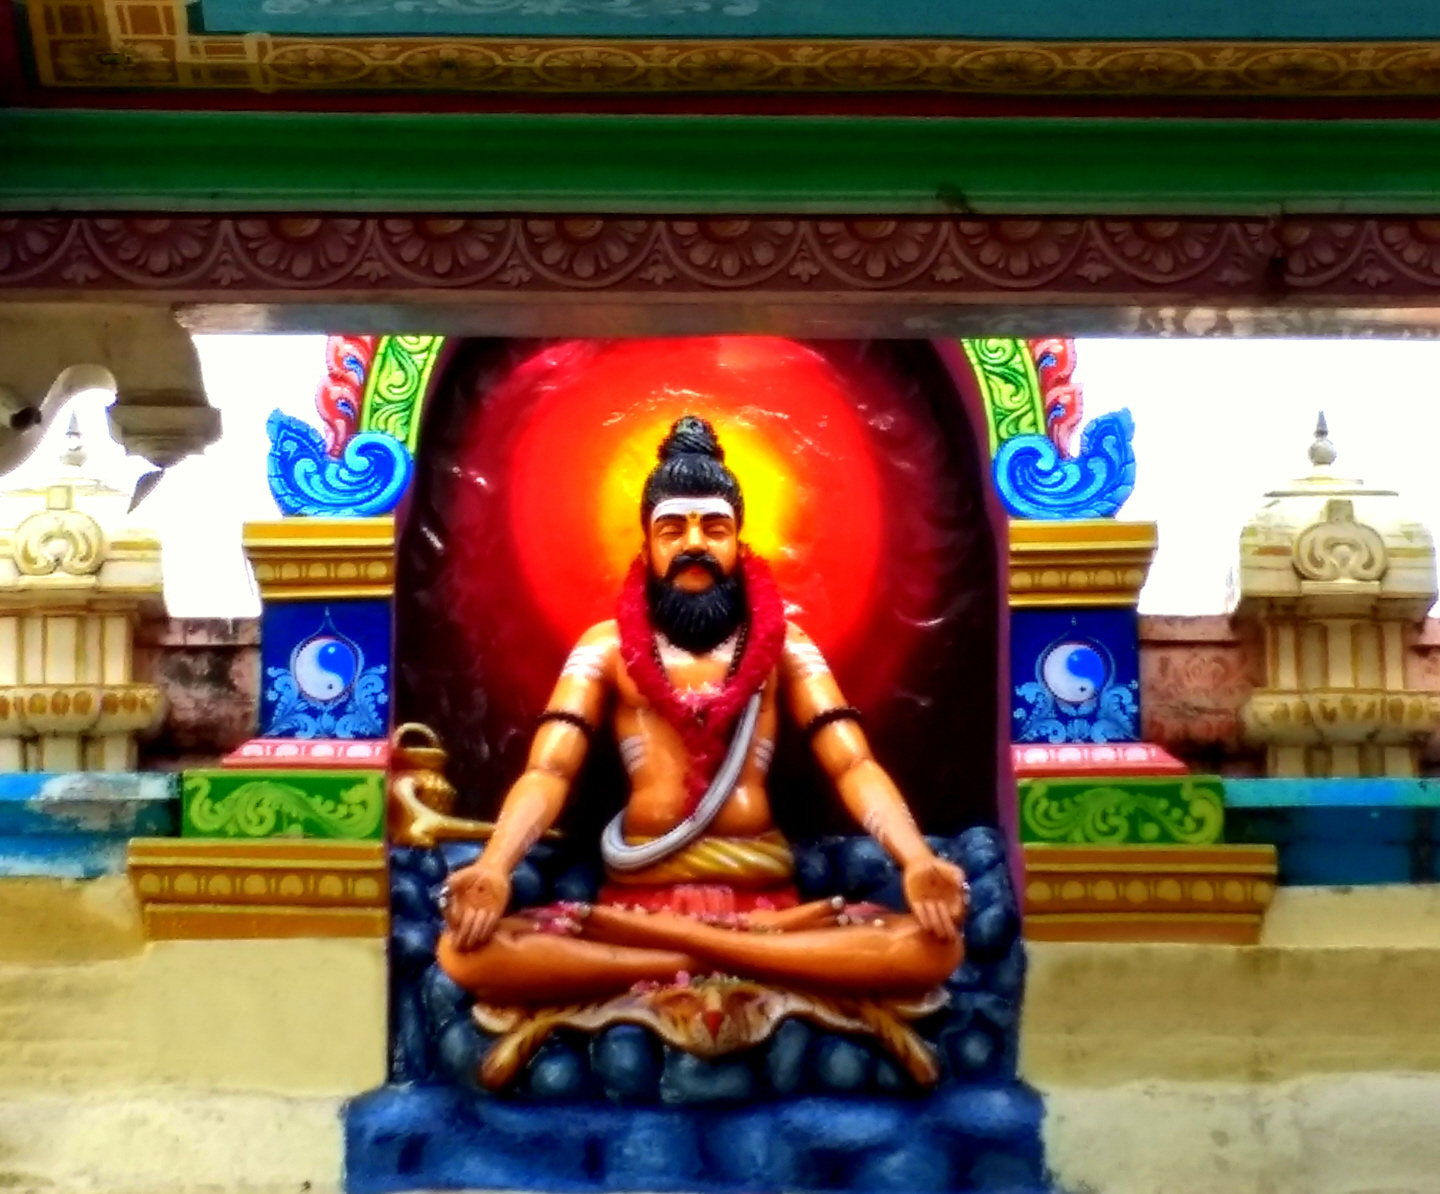 There are 18  major Siddha Saints in the Dravidan Spiritual Tradition this is Sri Bogar the main Siddha Associated with the Palani Temple- Palani, Tamil Nadu - India